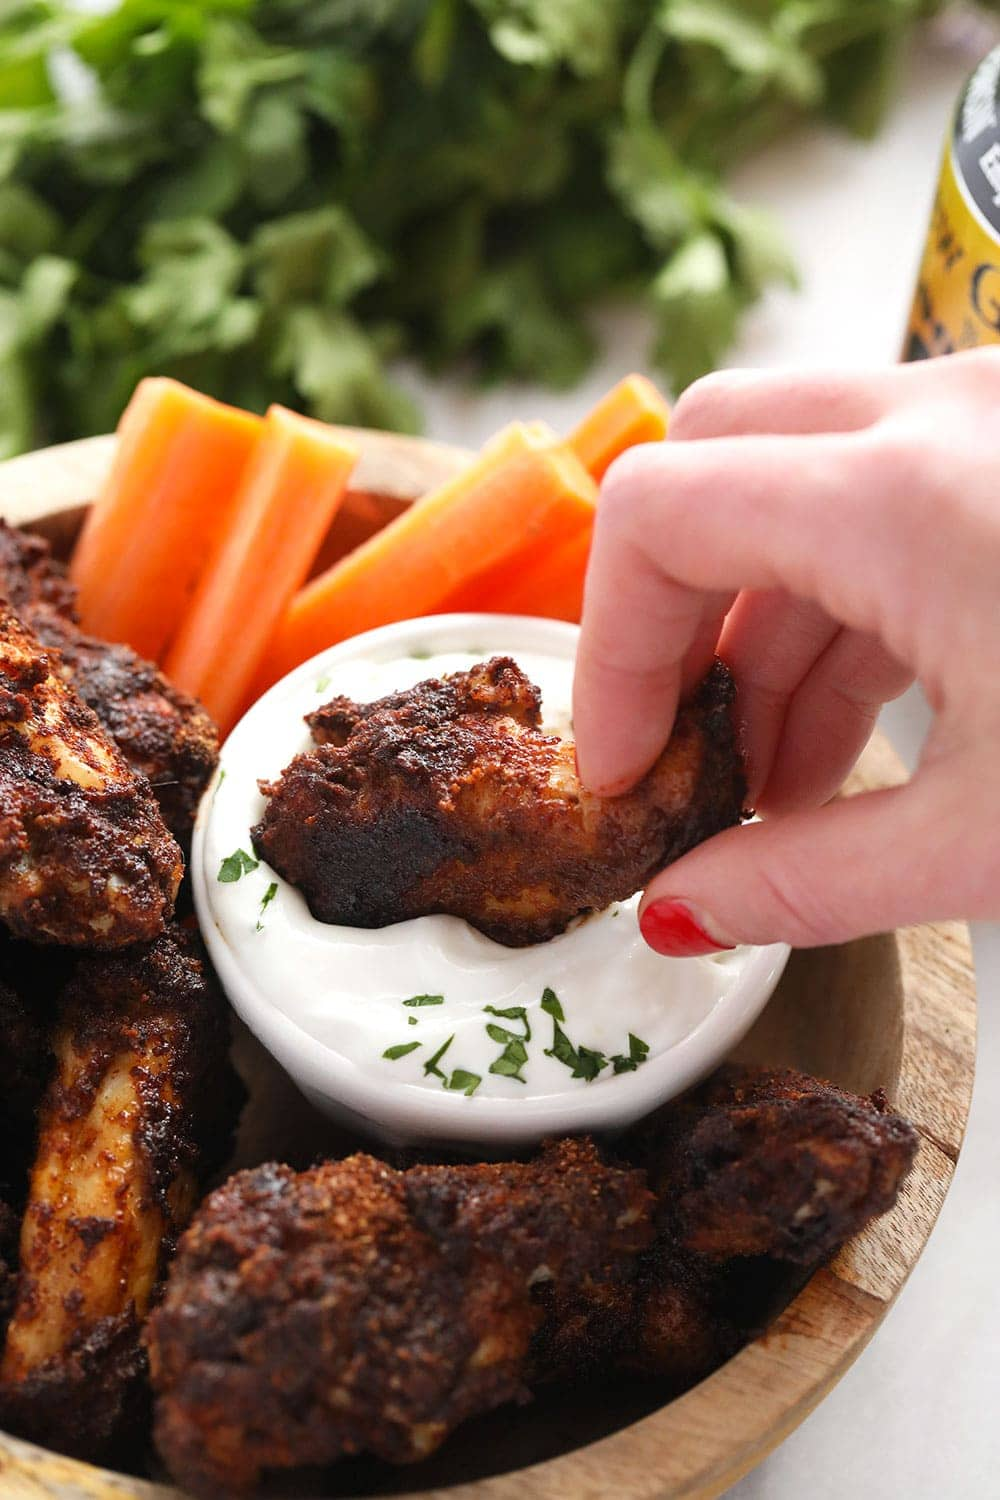 Dipping a chicken wing into blue cheese dressing